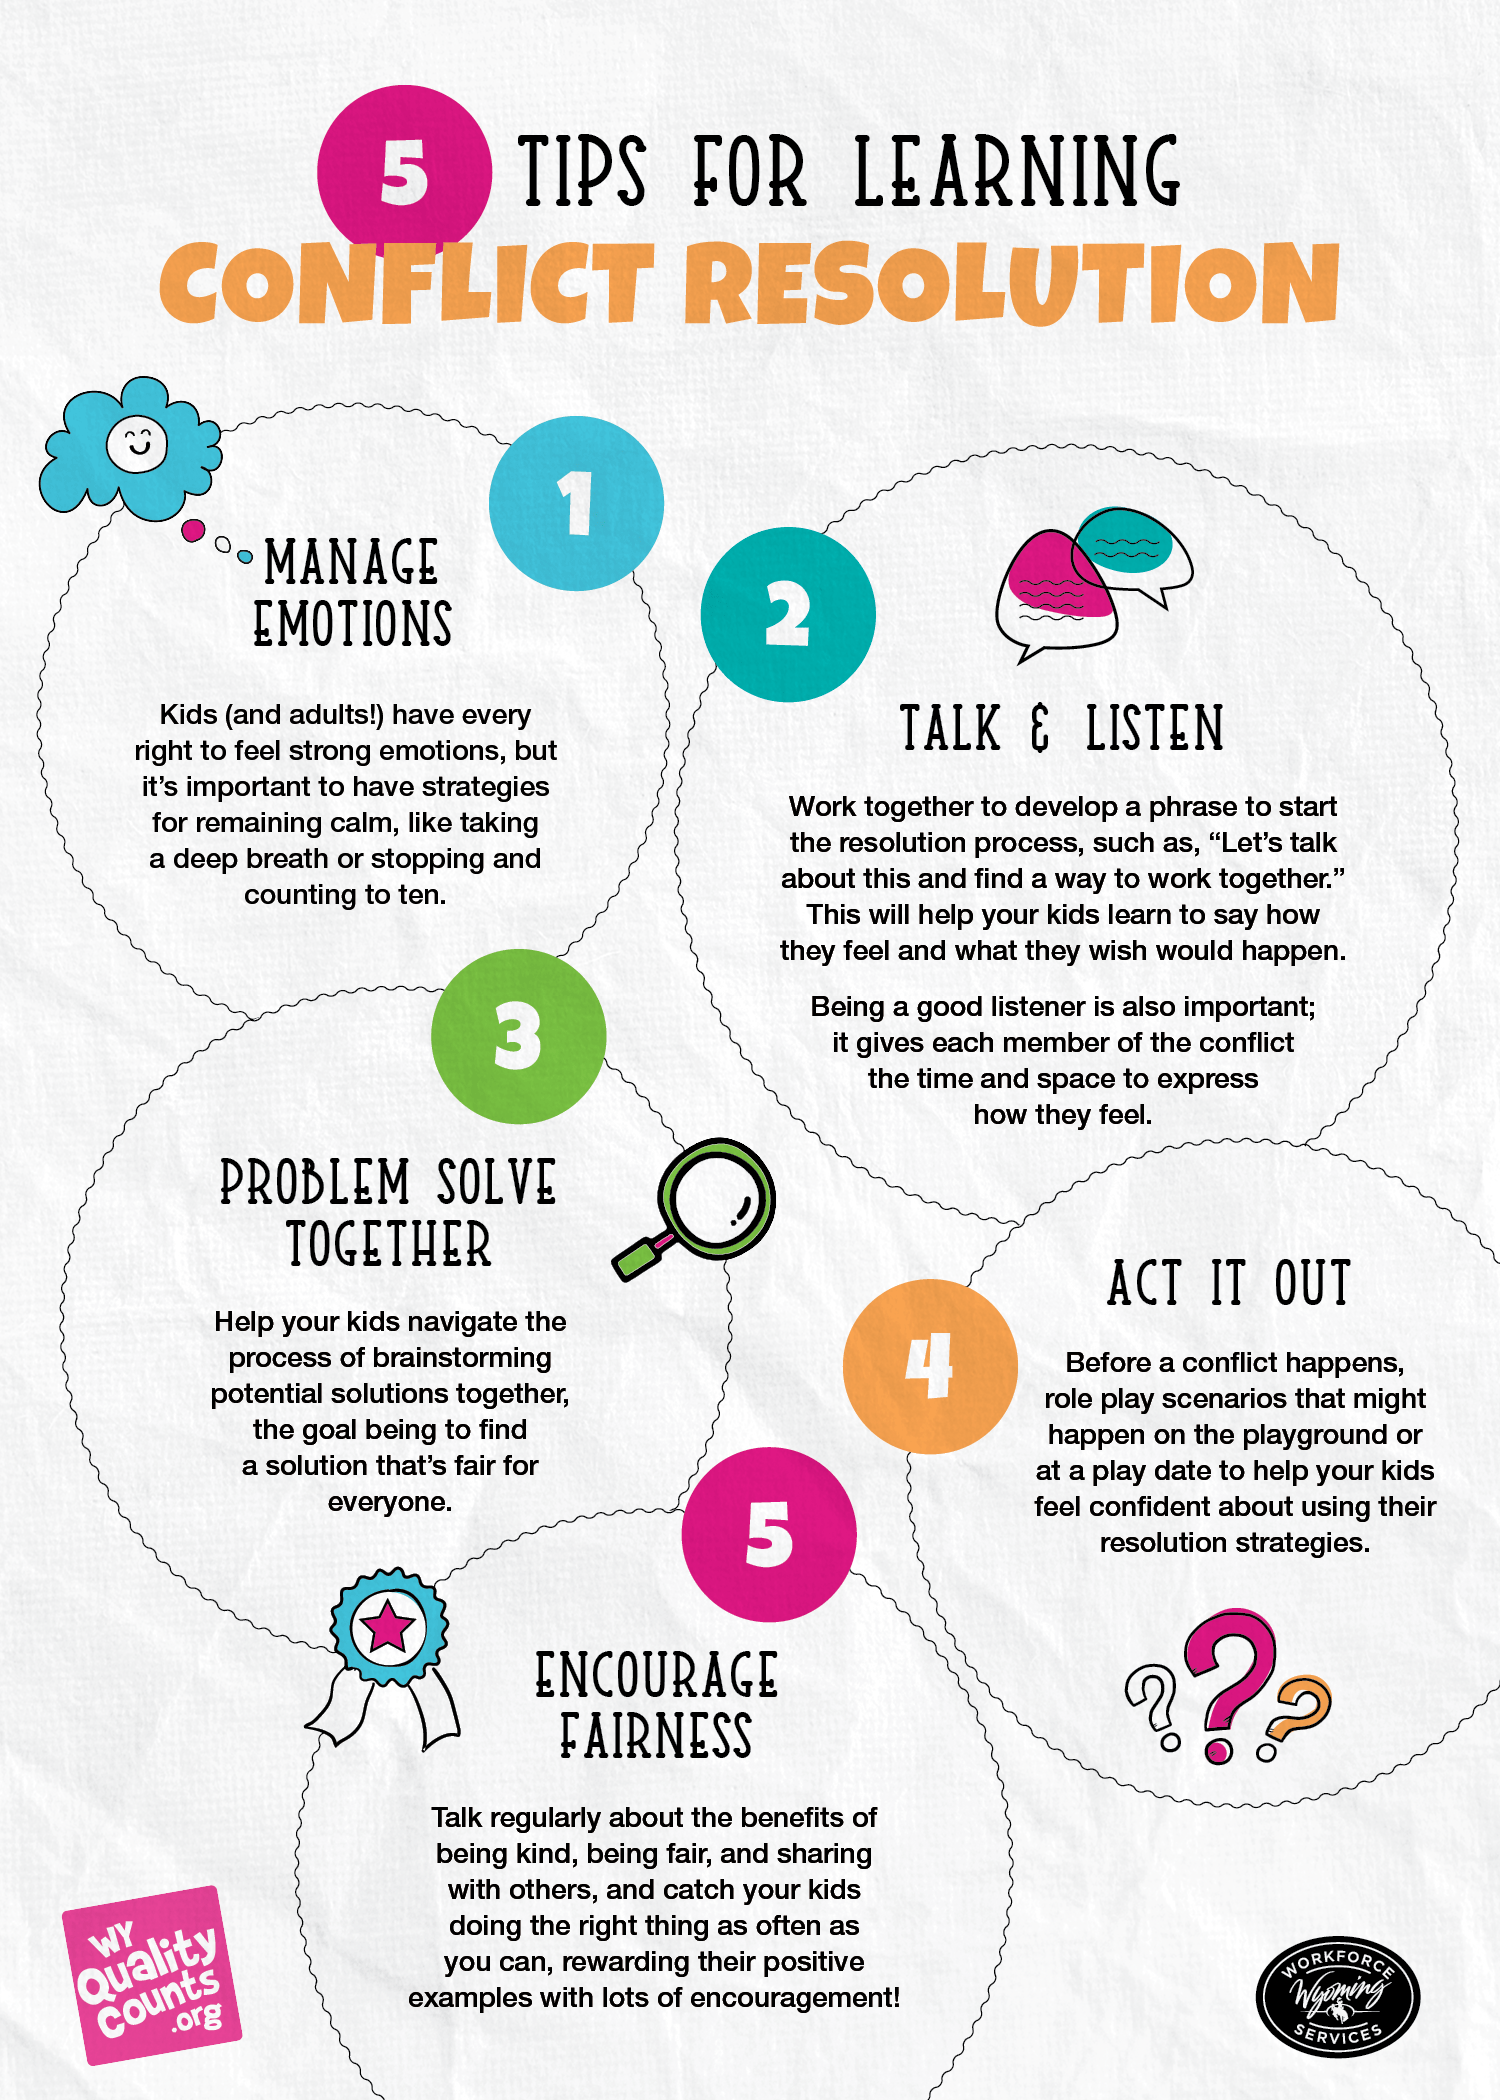 5 Ways For Learning Conflict Resolution